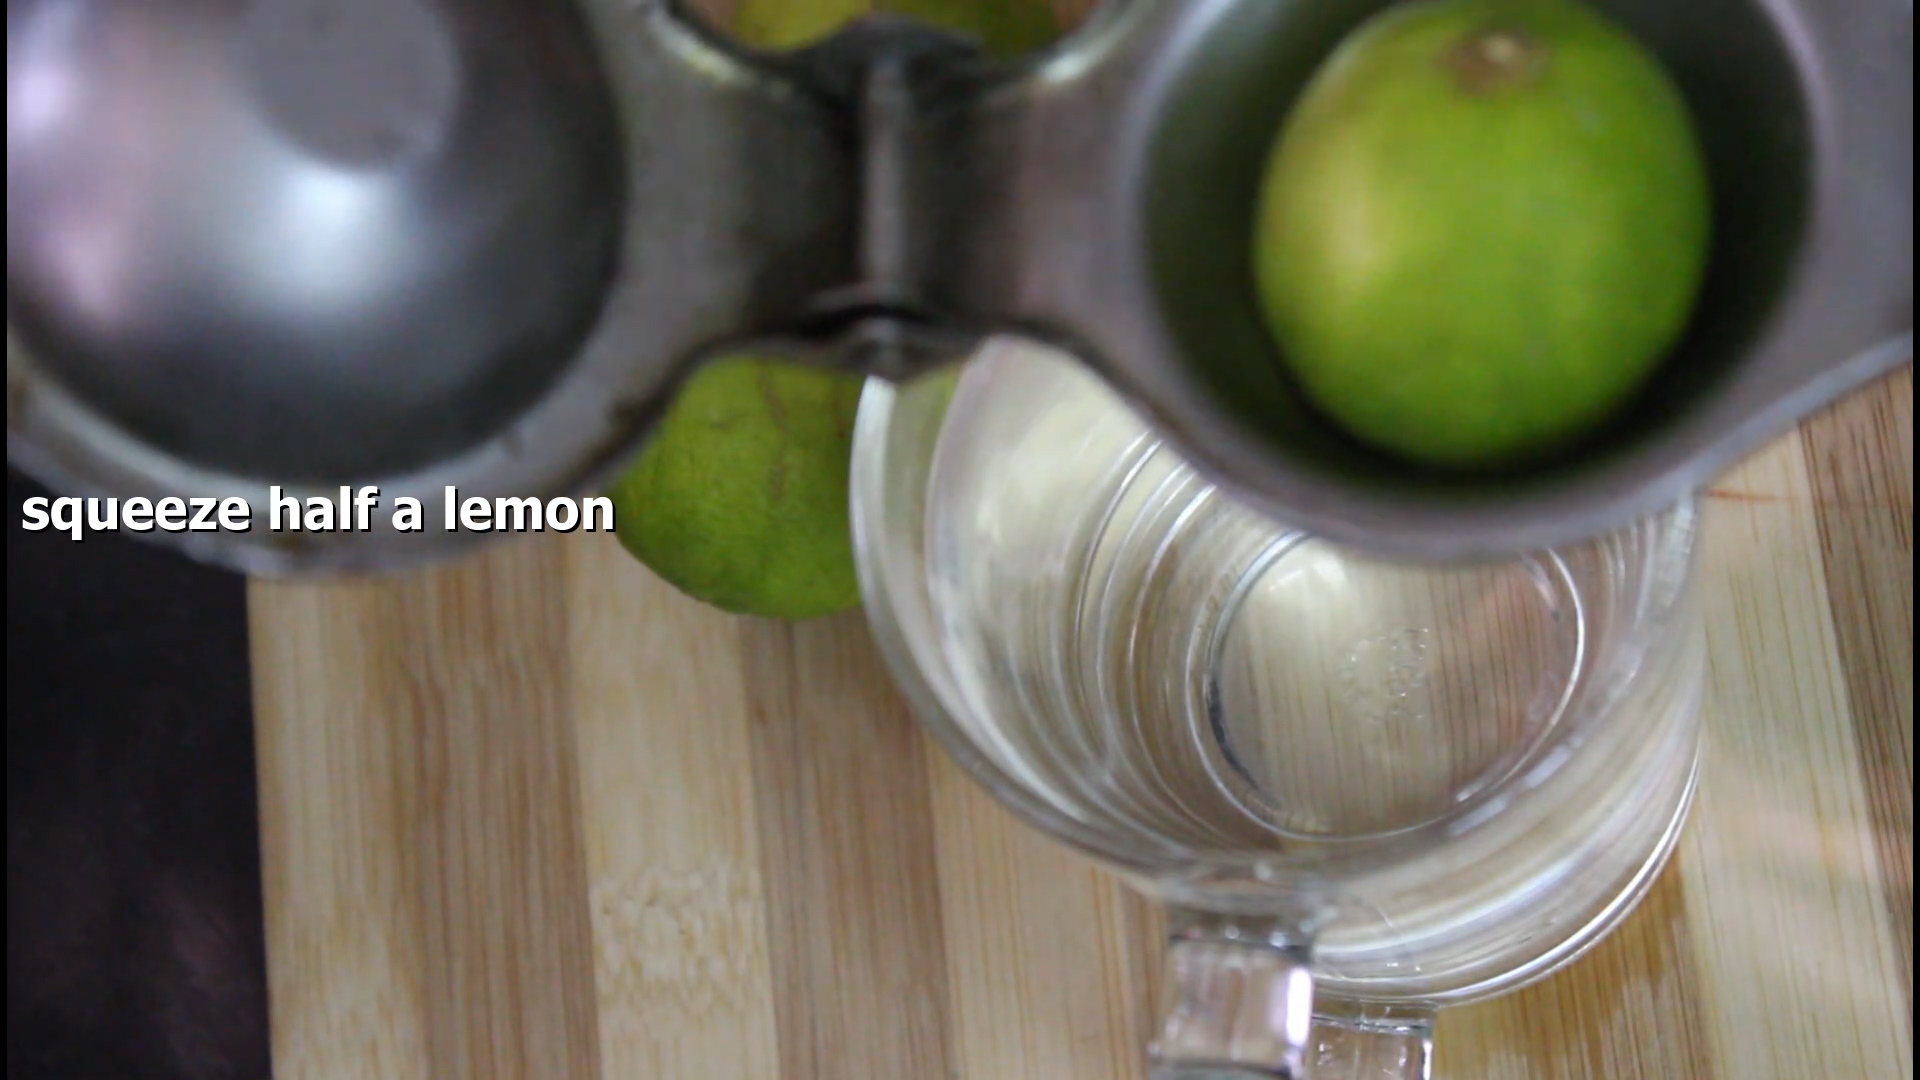 squeezing out lemon juice into the glass using a lemon squeezer